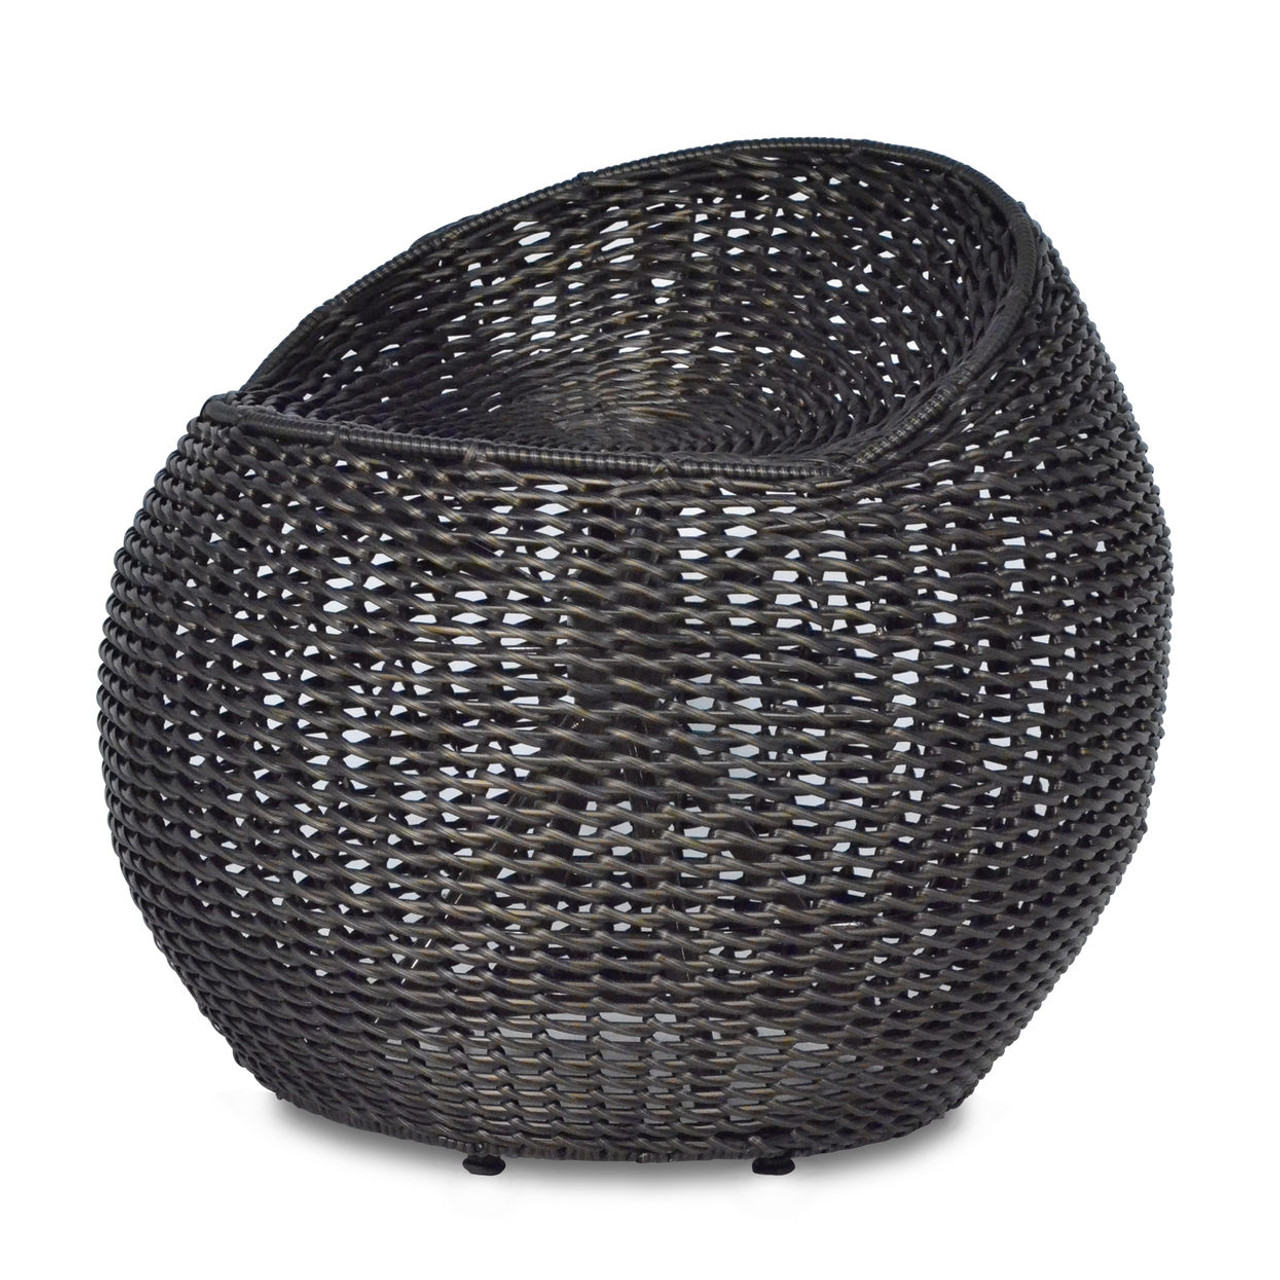 OUTDOOR OPEN WEAVE WICKER SWIVEL STOOL